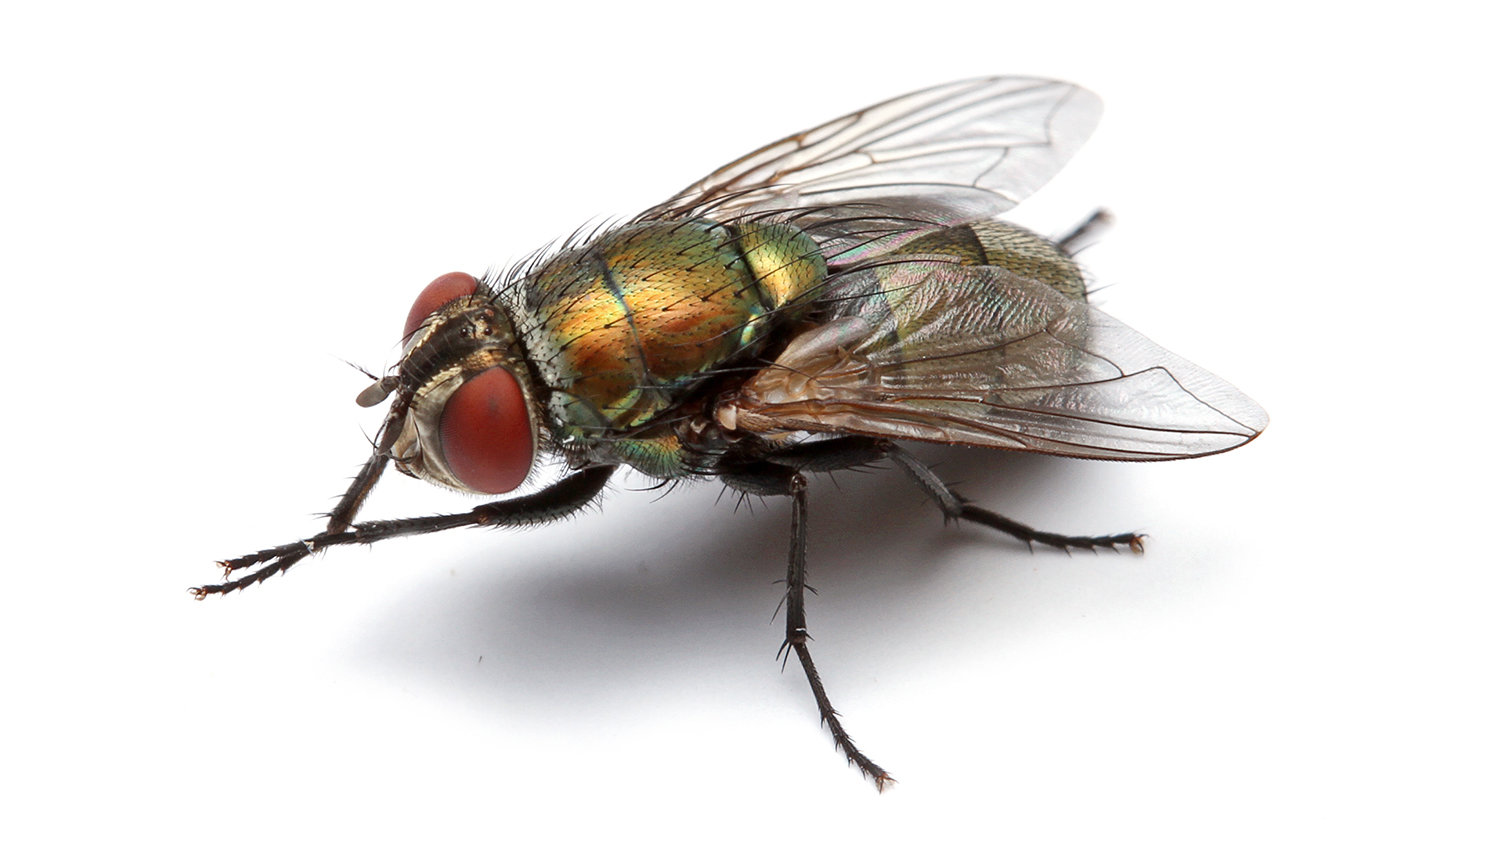 How to sex a blowfly